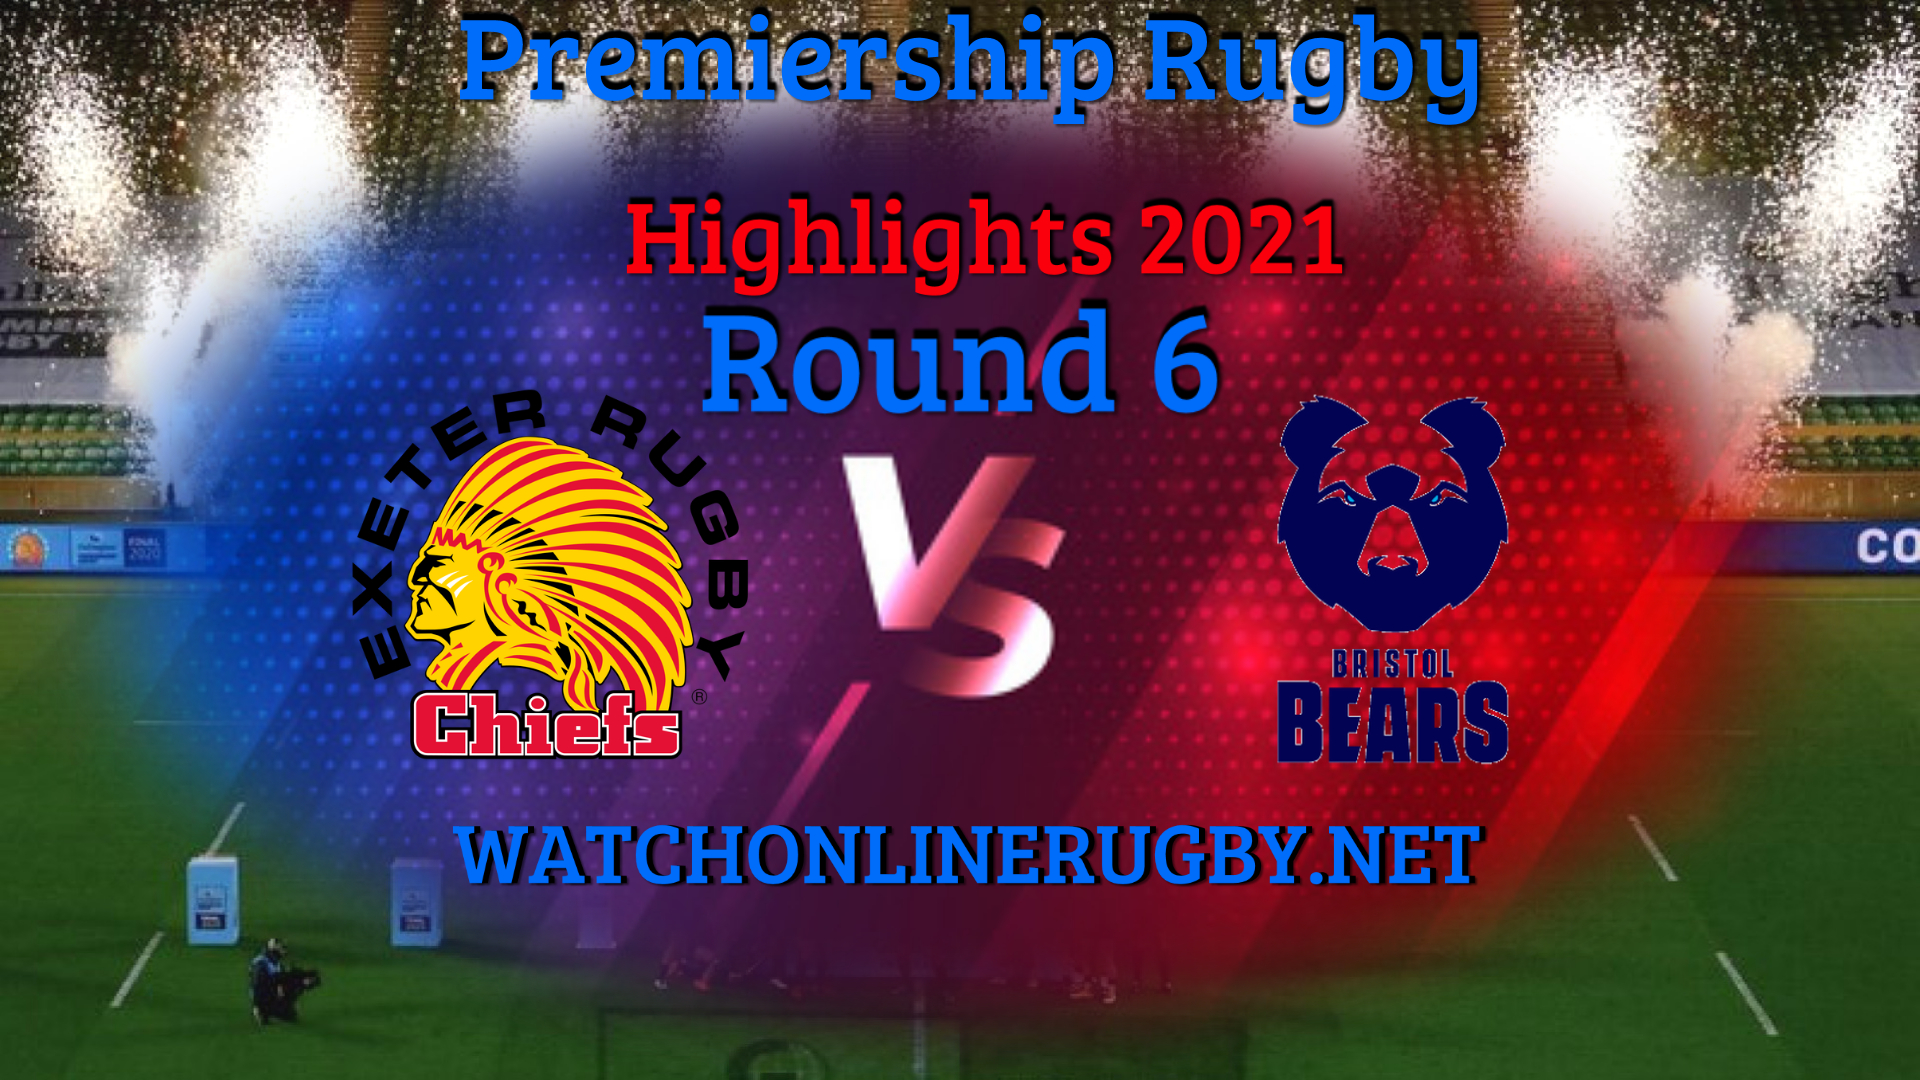 Exeter Chiefs VS Bristol Bears Premiership Rugby 2021 RD 6